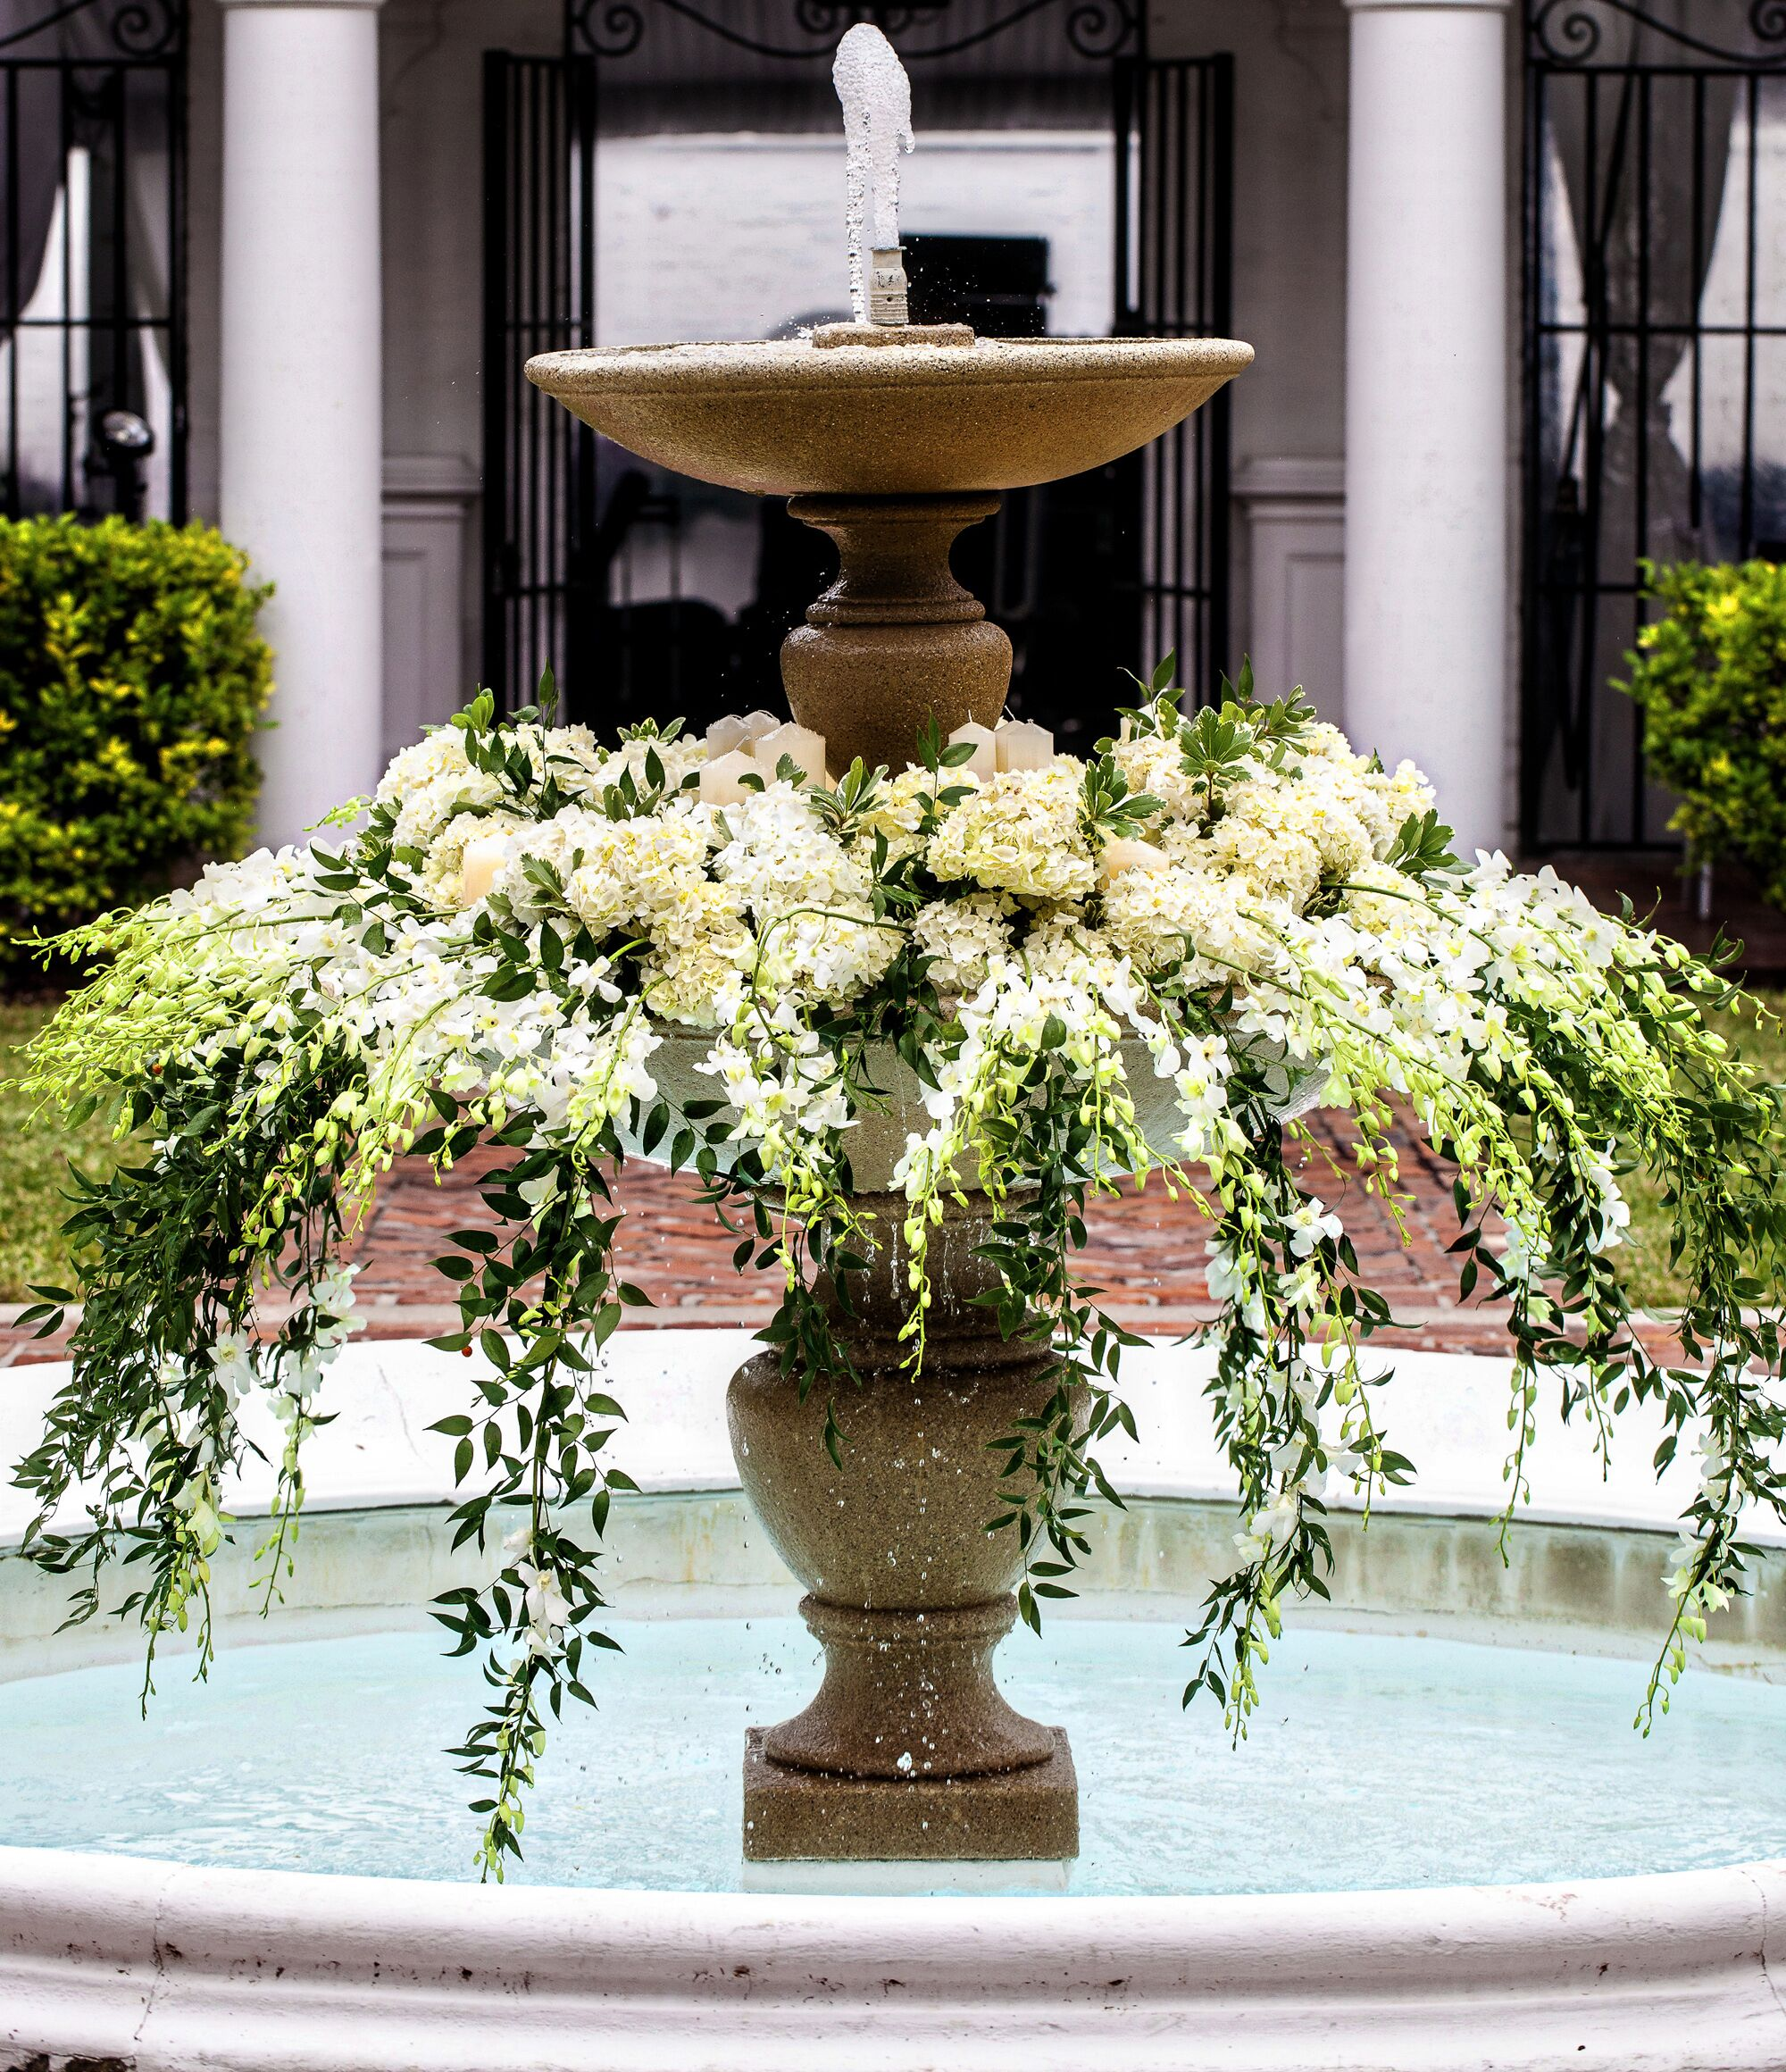 Hotel Foyer Flower Arrangements : Totally unexpected wedding flower ideas